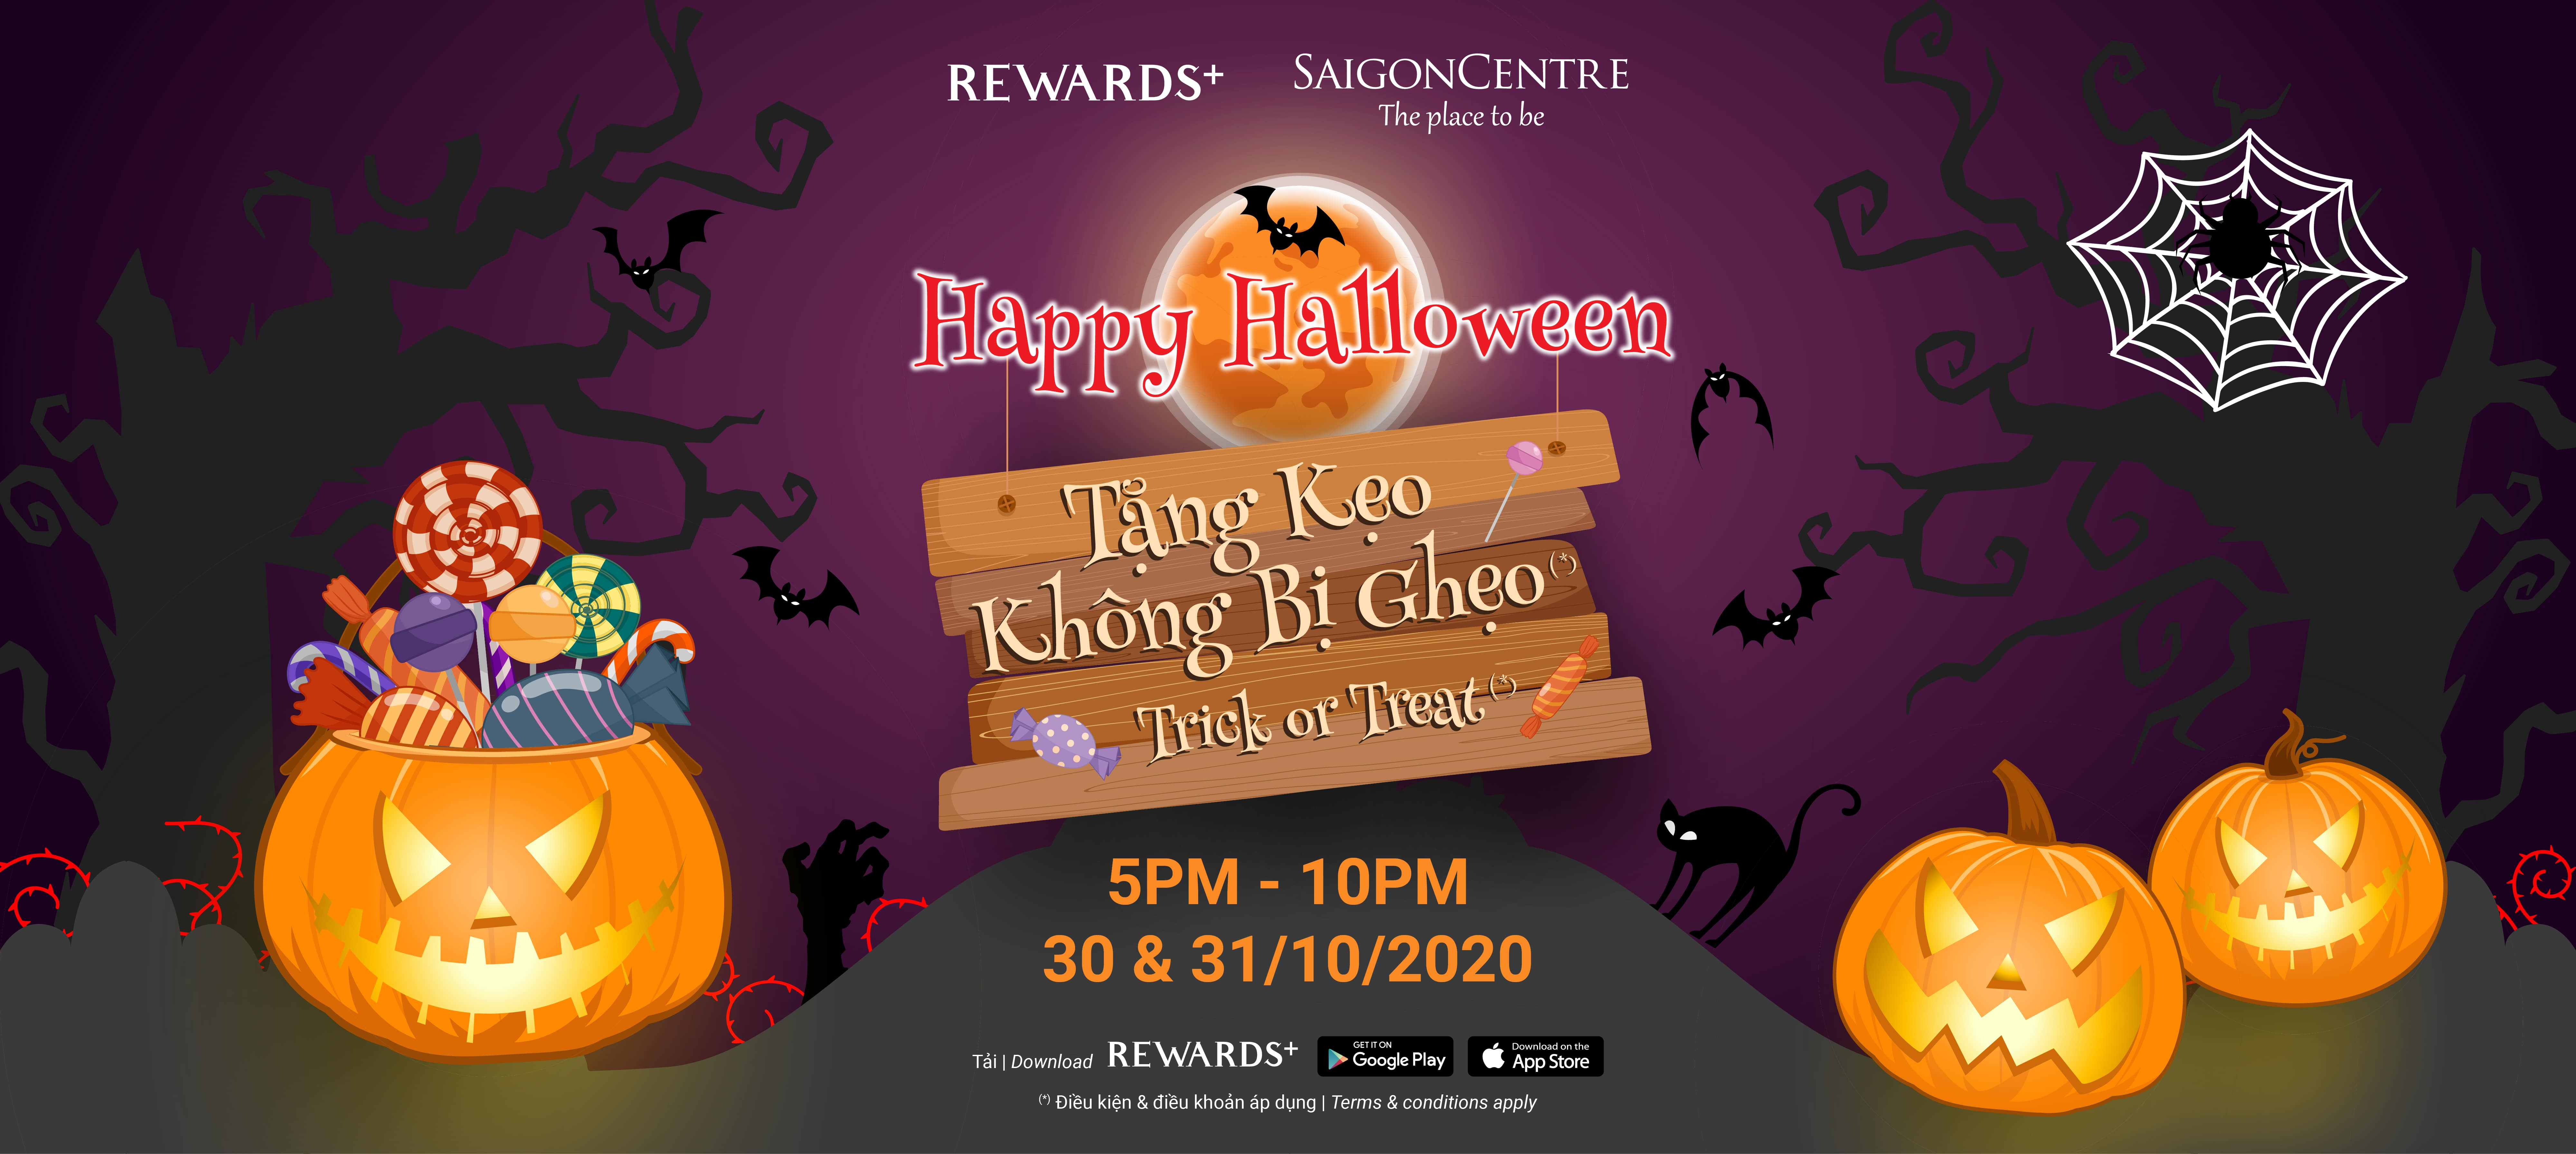 TRICK & TREAT - HALLOWEEN GIFTS FROM SAIGON CENTRE